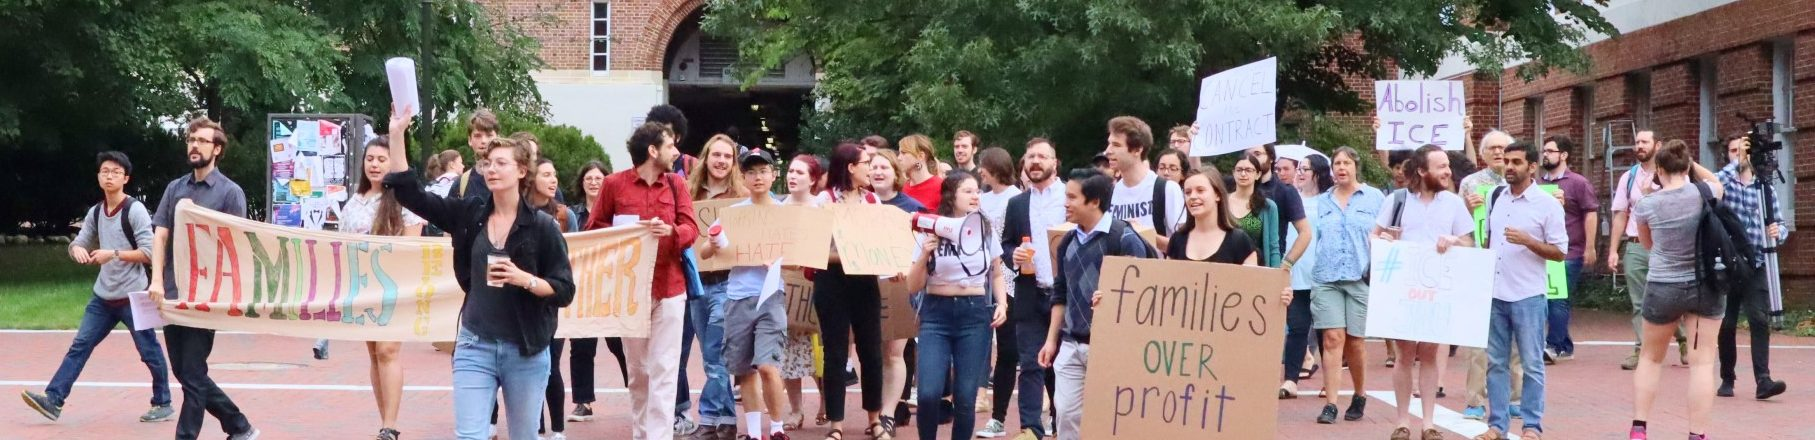 A large group of people carrying signs marches from Gilman Hall towards Garland